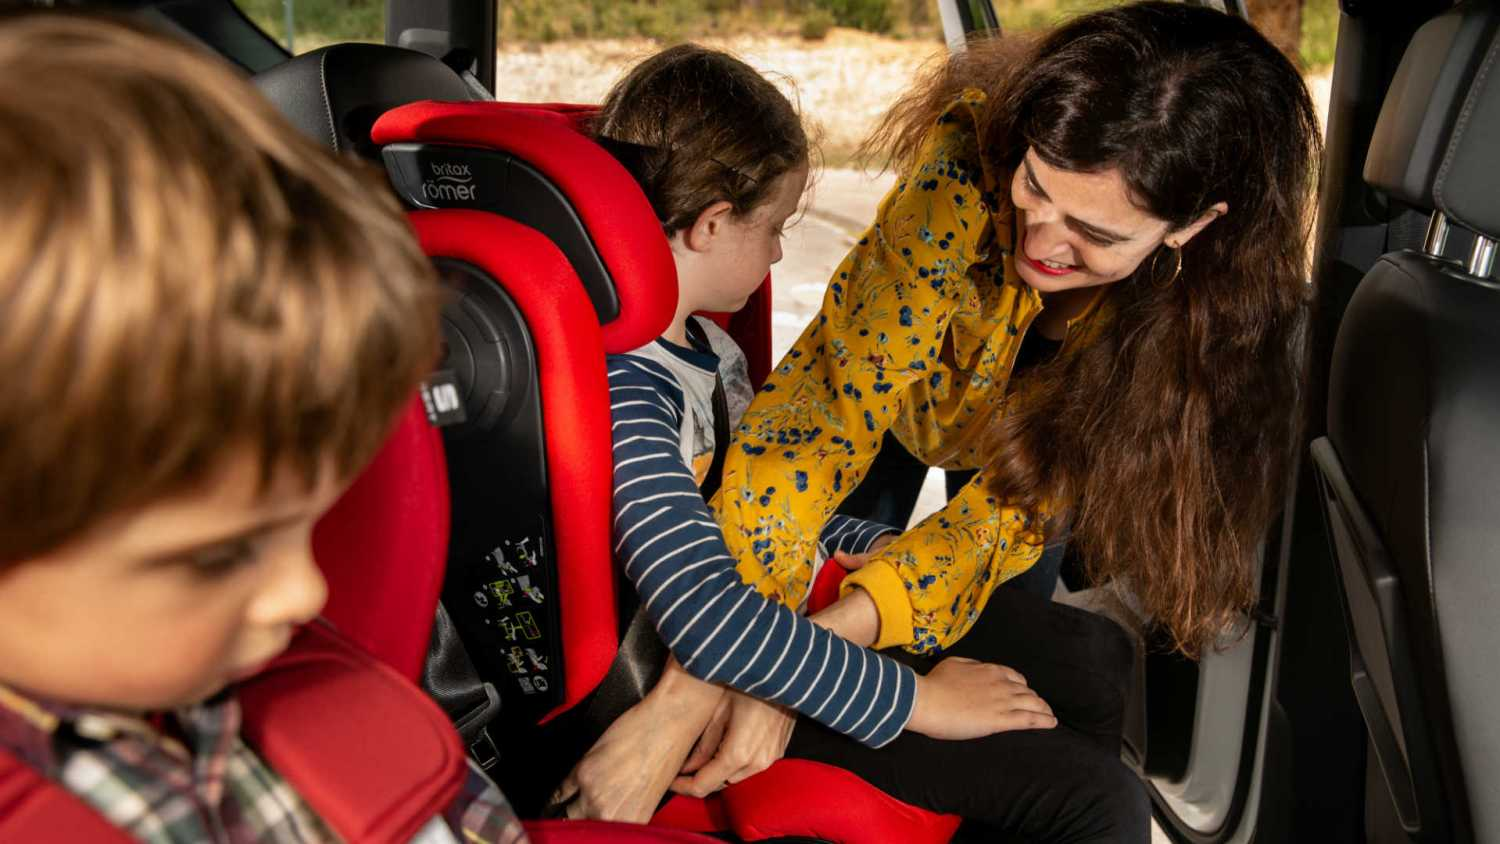 Wrongly fitted car seats putting children in danger